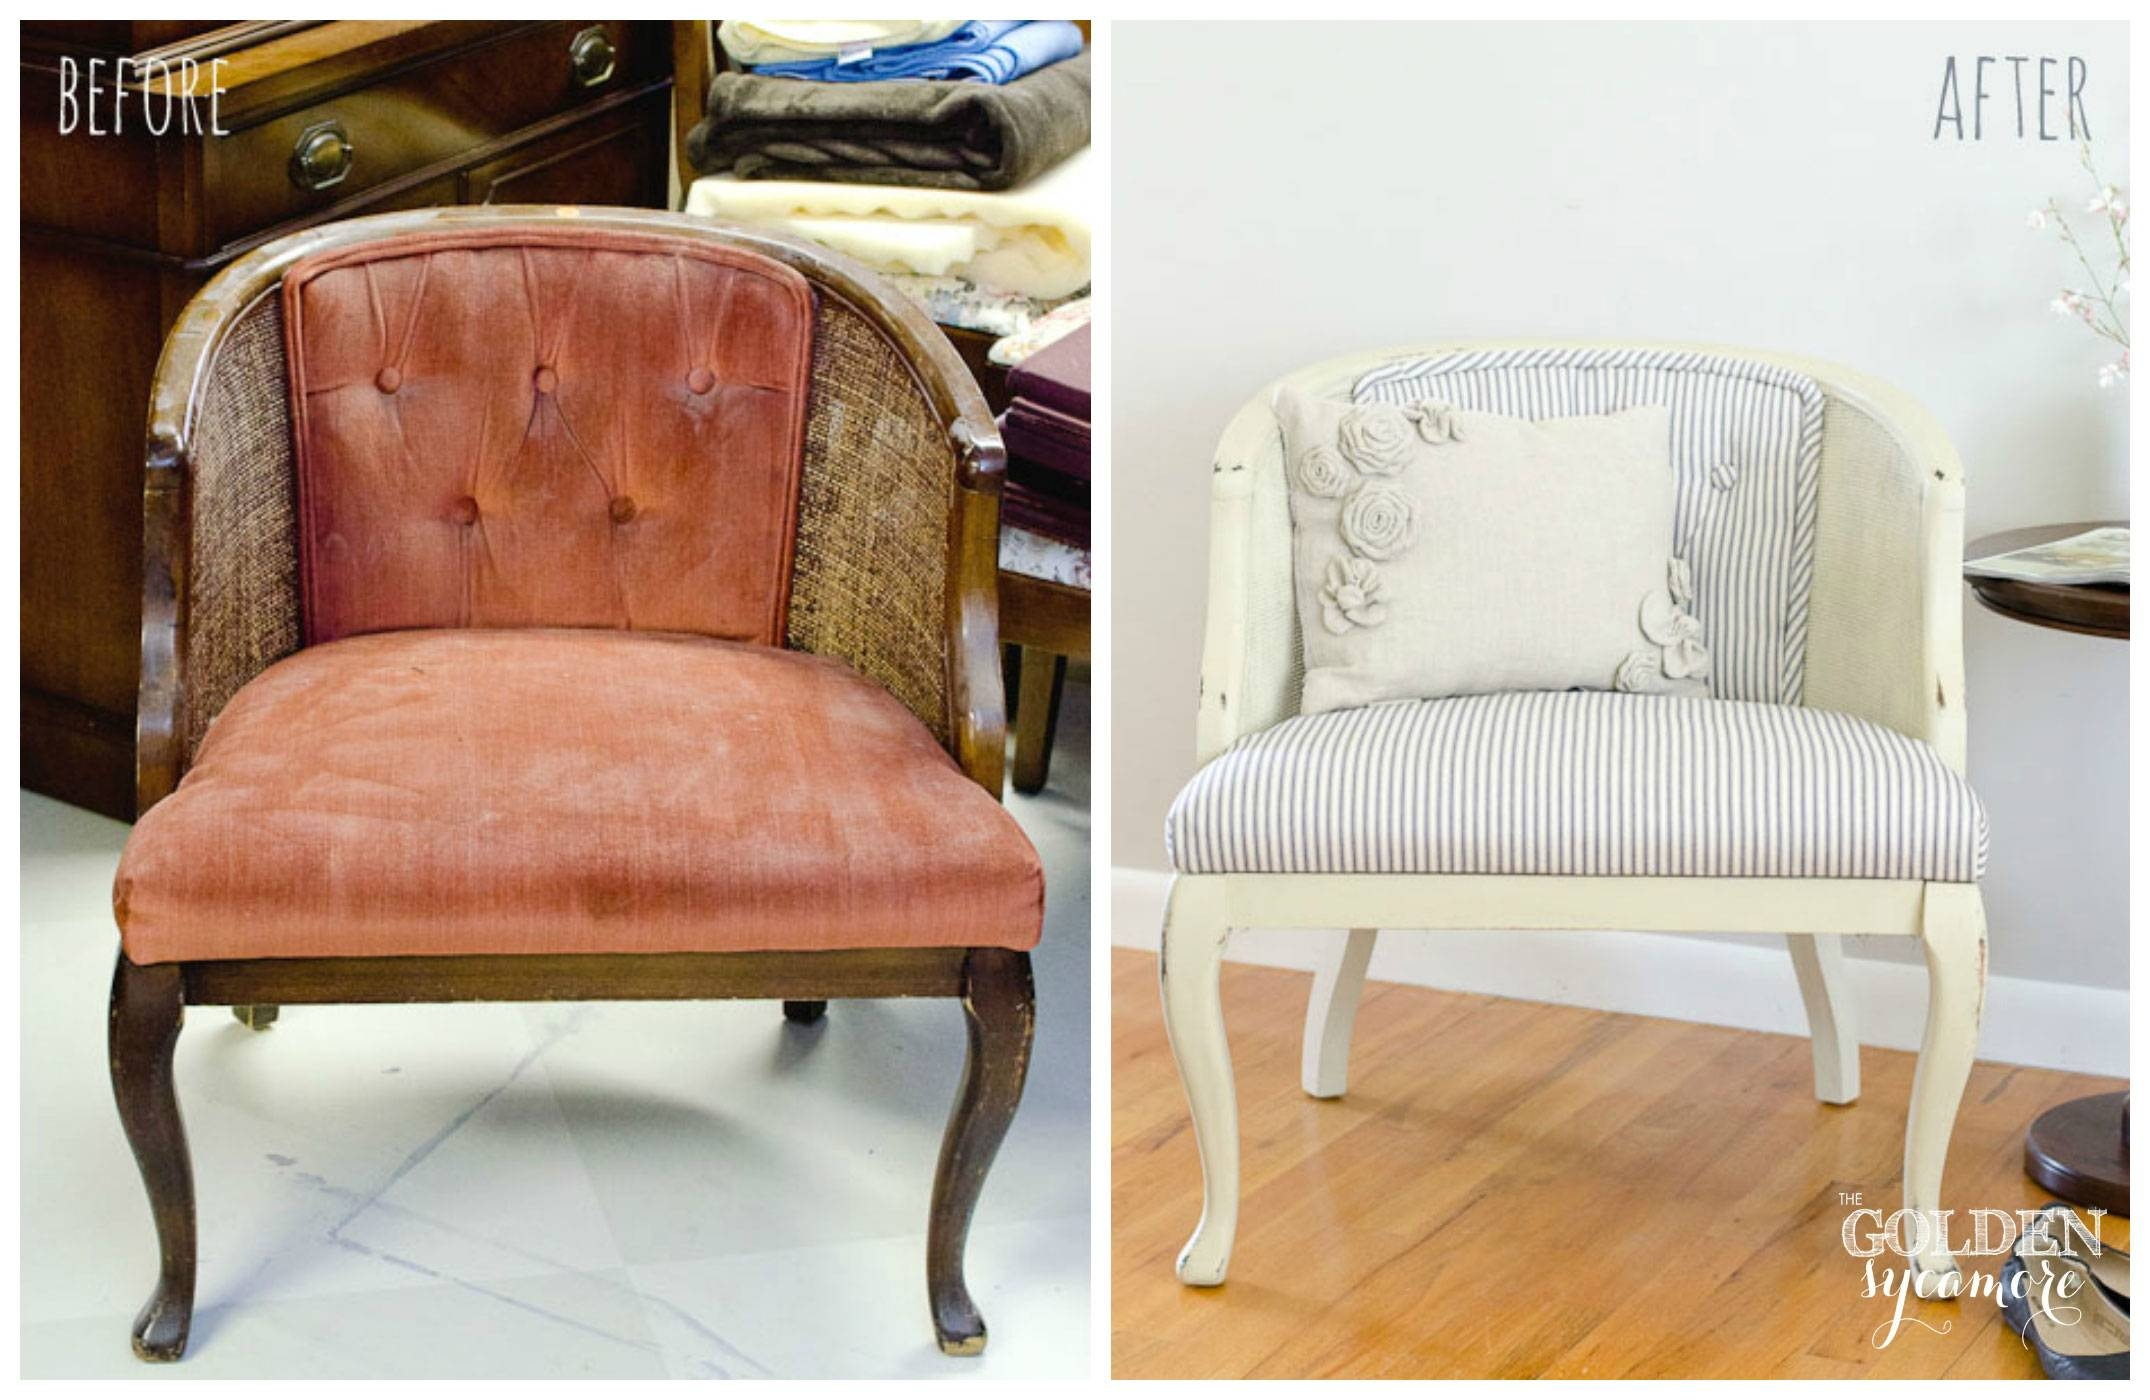 Reupholstered Tufted Cane Chair - The Golden Sycamore pertaining to White Cane Sofas (Image 25 of 30)